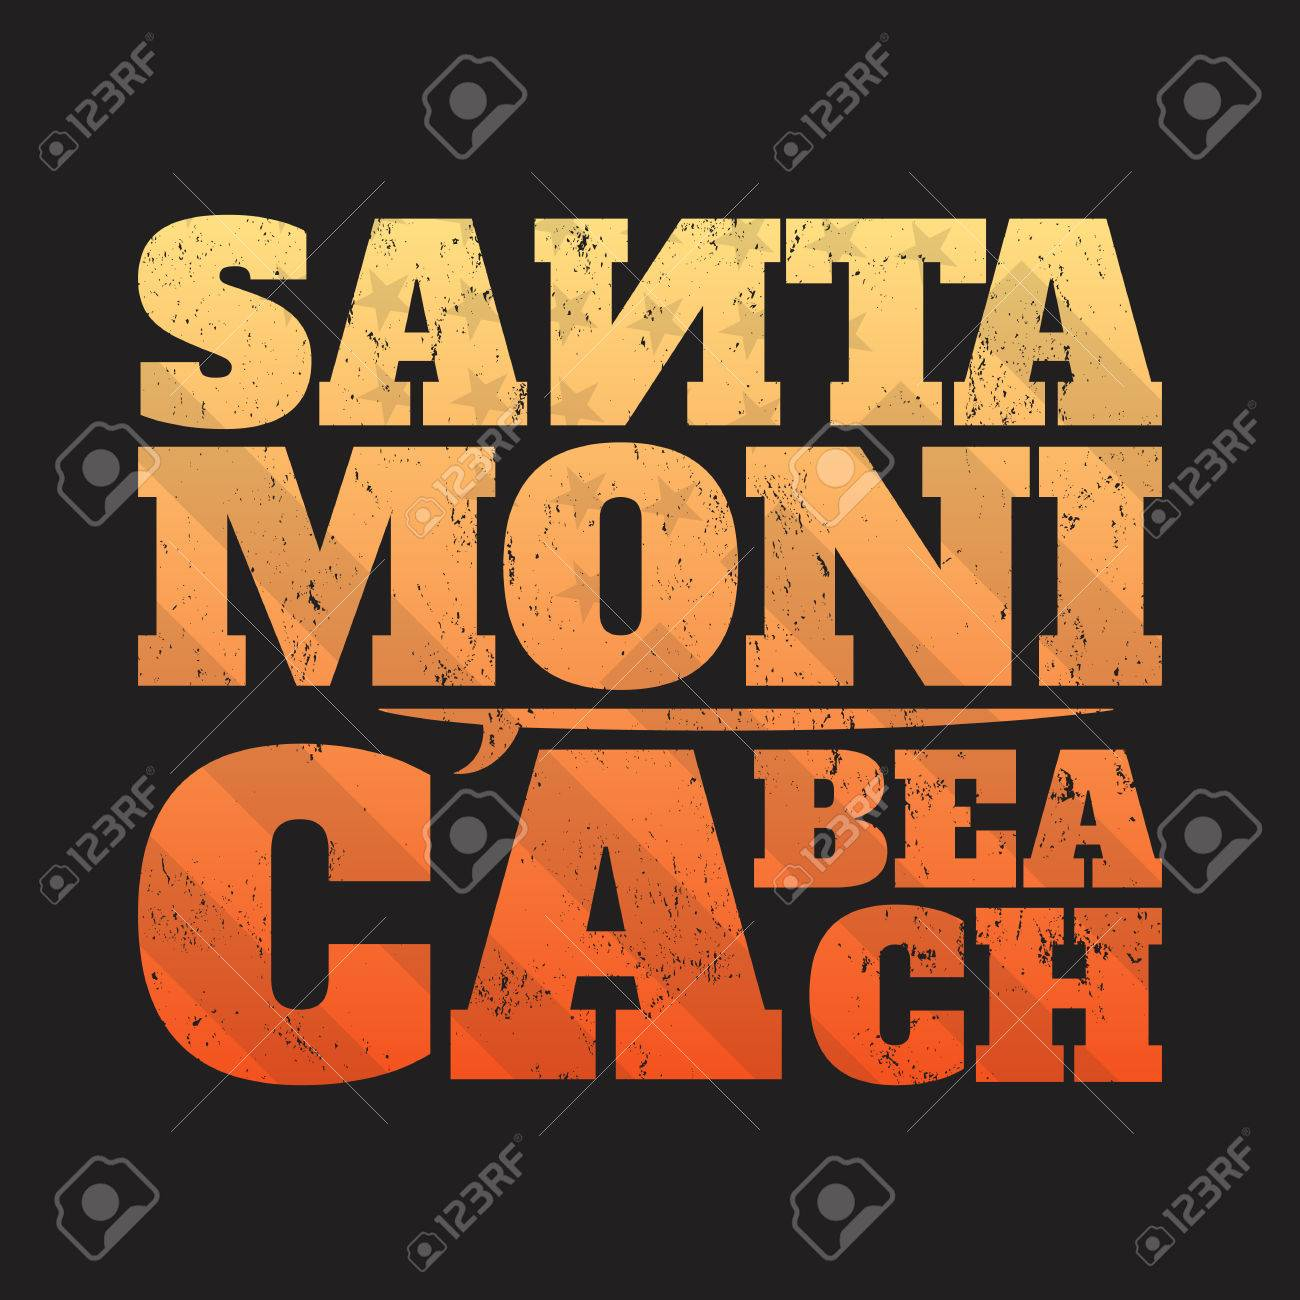 b4b858c4a Santa Monica tee print with surfboard. T-shirt design, graphics, stamp,